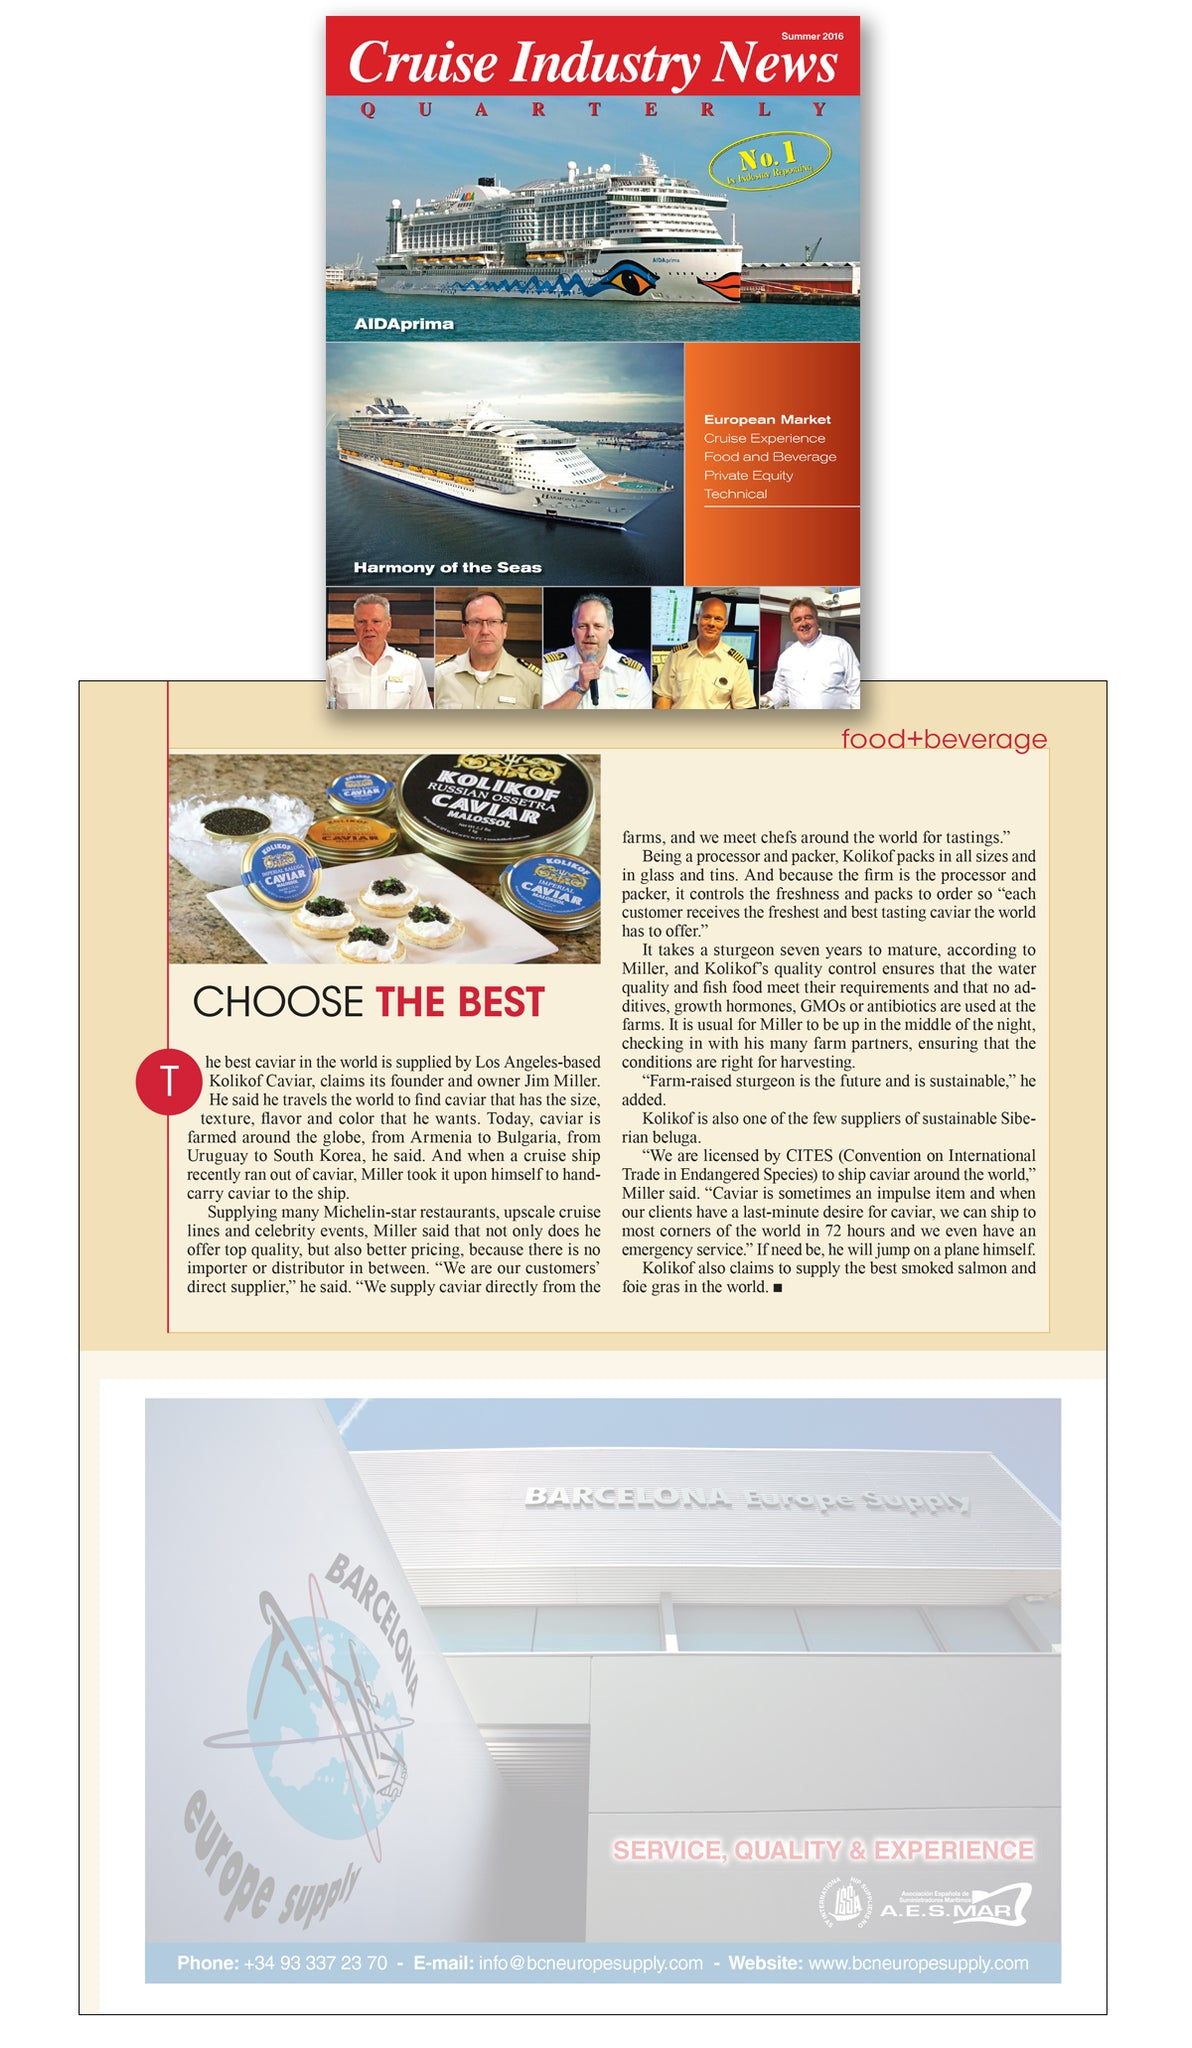 Cruise Industry News and Kolikof Caviar and Salmon